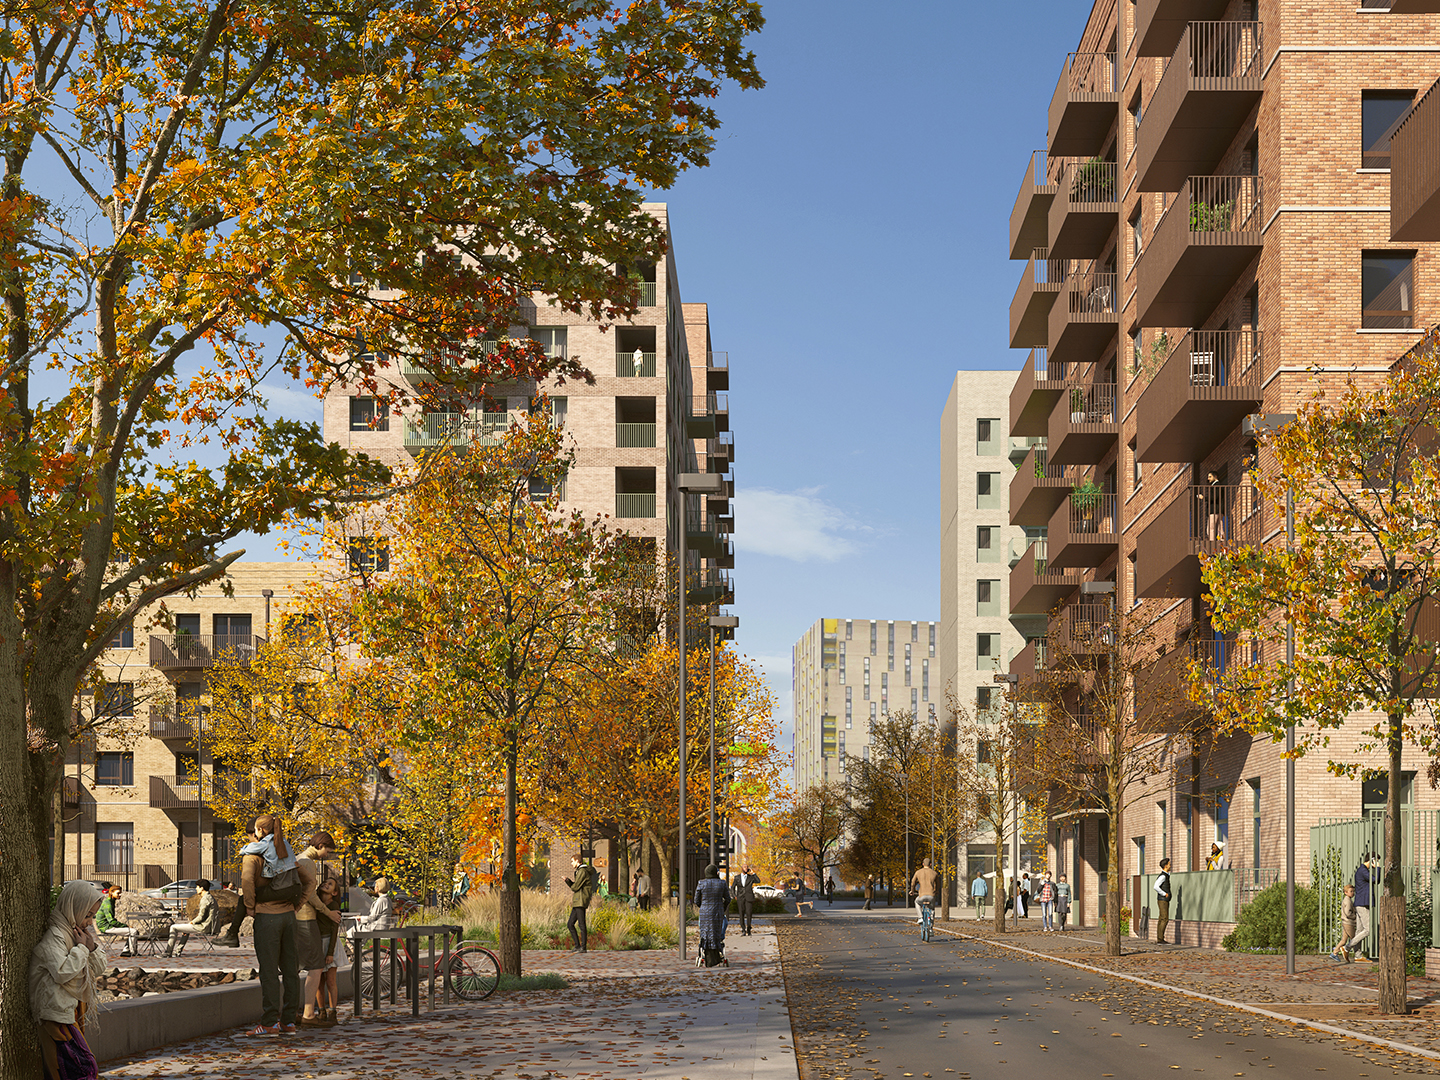 Gascoigne Estate focuses on nature-based solutions and MMC